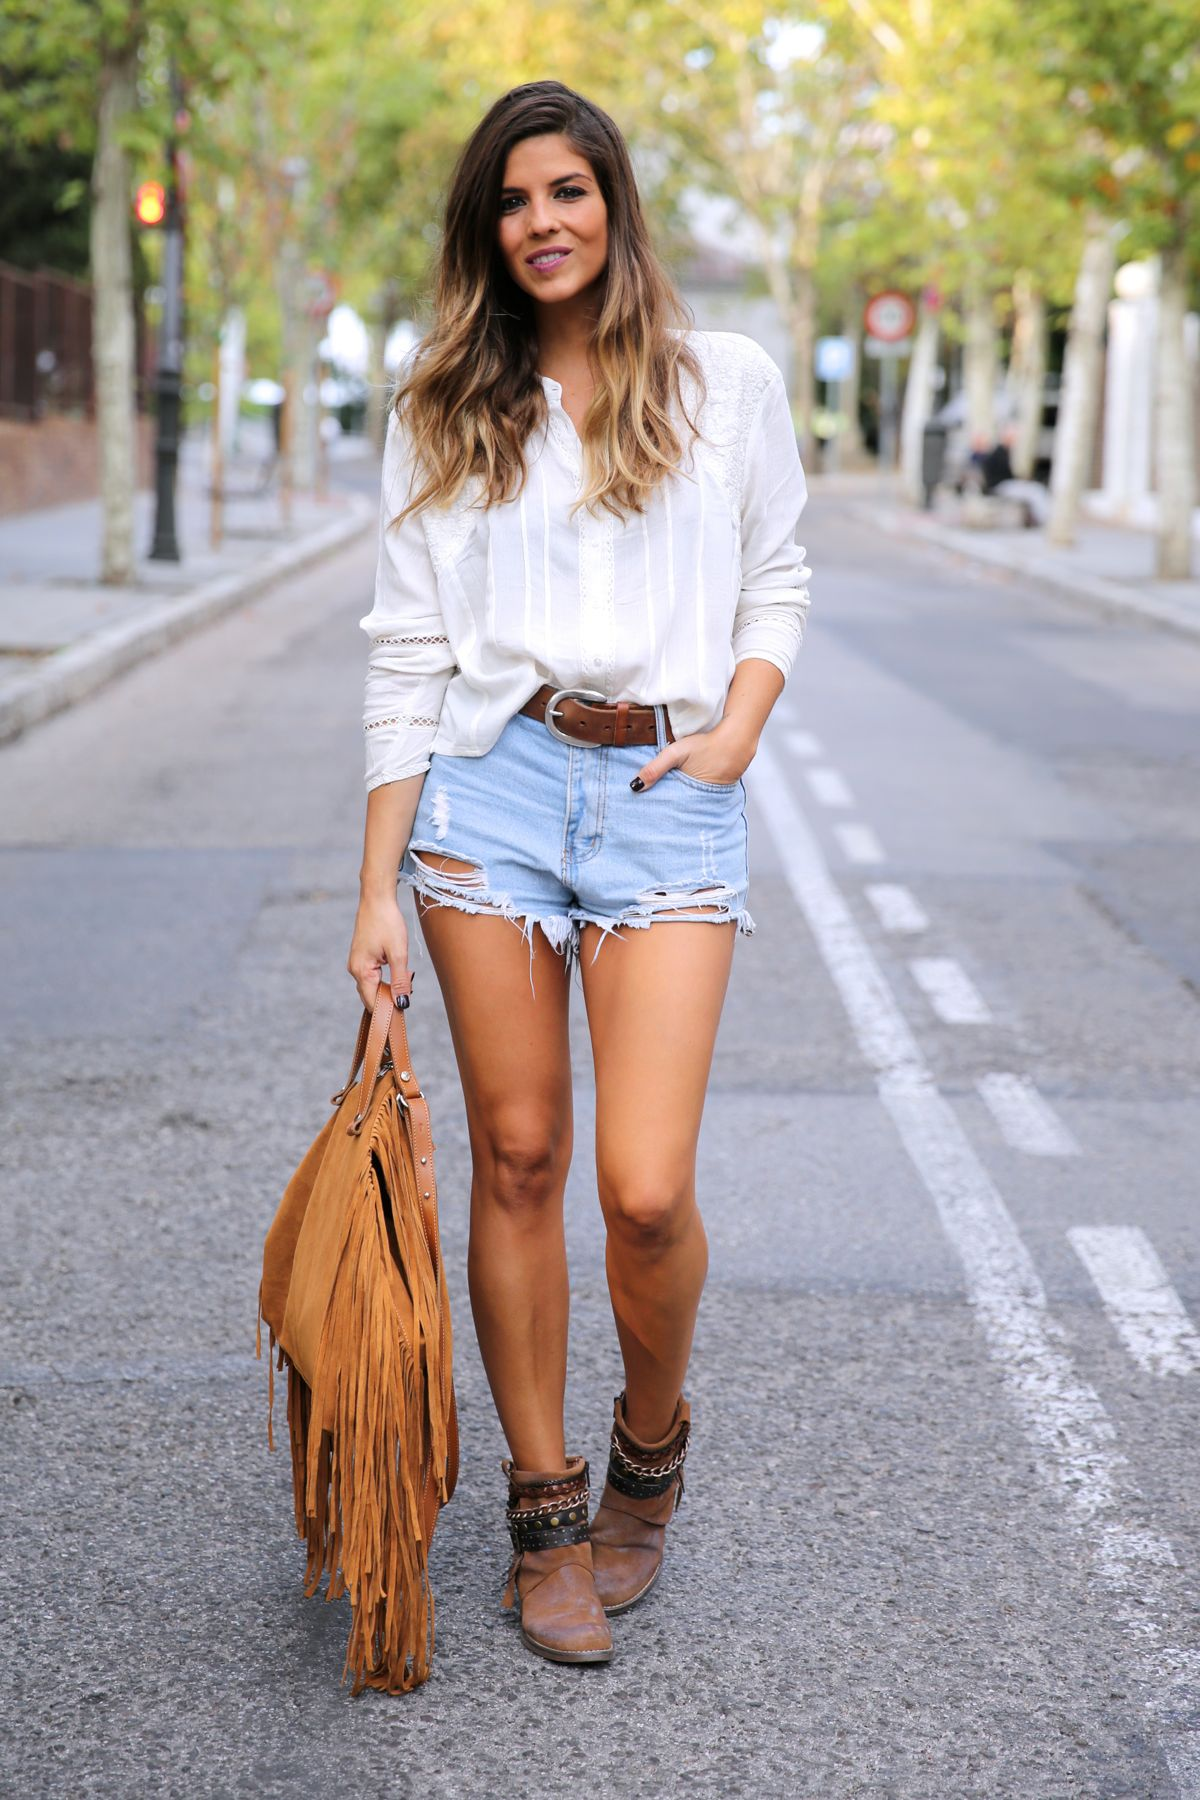 trendy_taste-look-outfit-street_style-ootd-blog-blogger-fashion_spain-moda_españa-boho-hippie-flecos-botines_camperos-cowboy_booties-mochila-backpack-blusa-camisa-denim-shorts-vaqueros-5